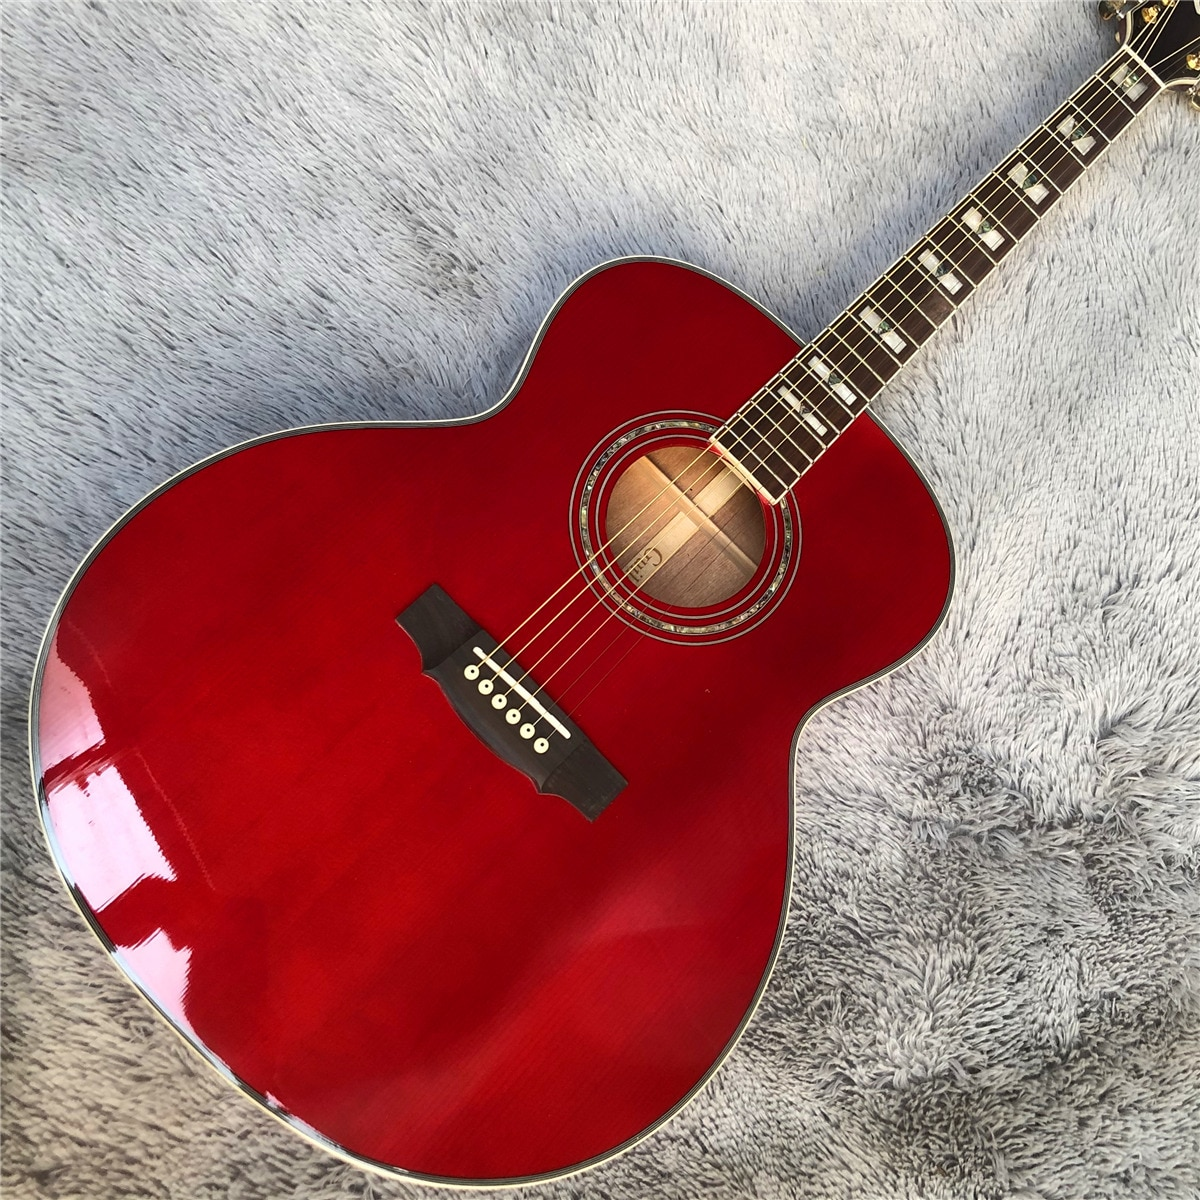 Professional 43 Inches Jumbo F50 Vintage Guitars Gloss Red Guild Acoustic Electric Guitar Free Shipping